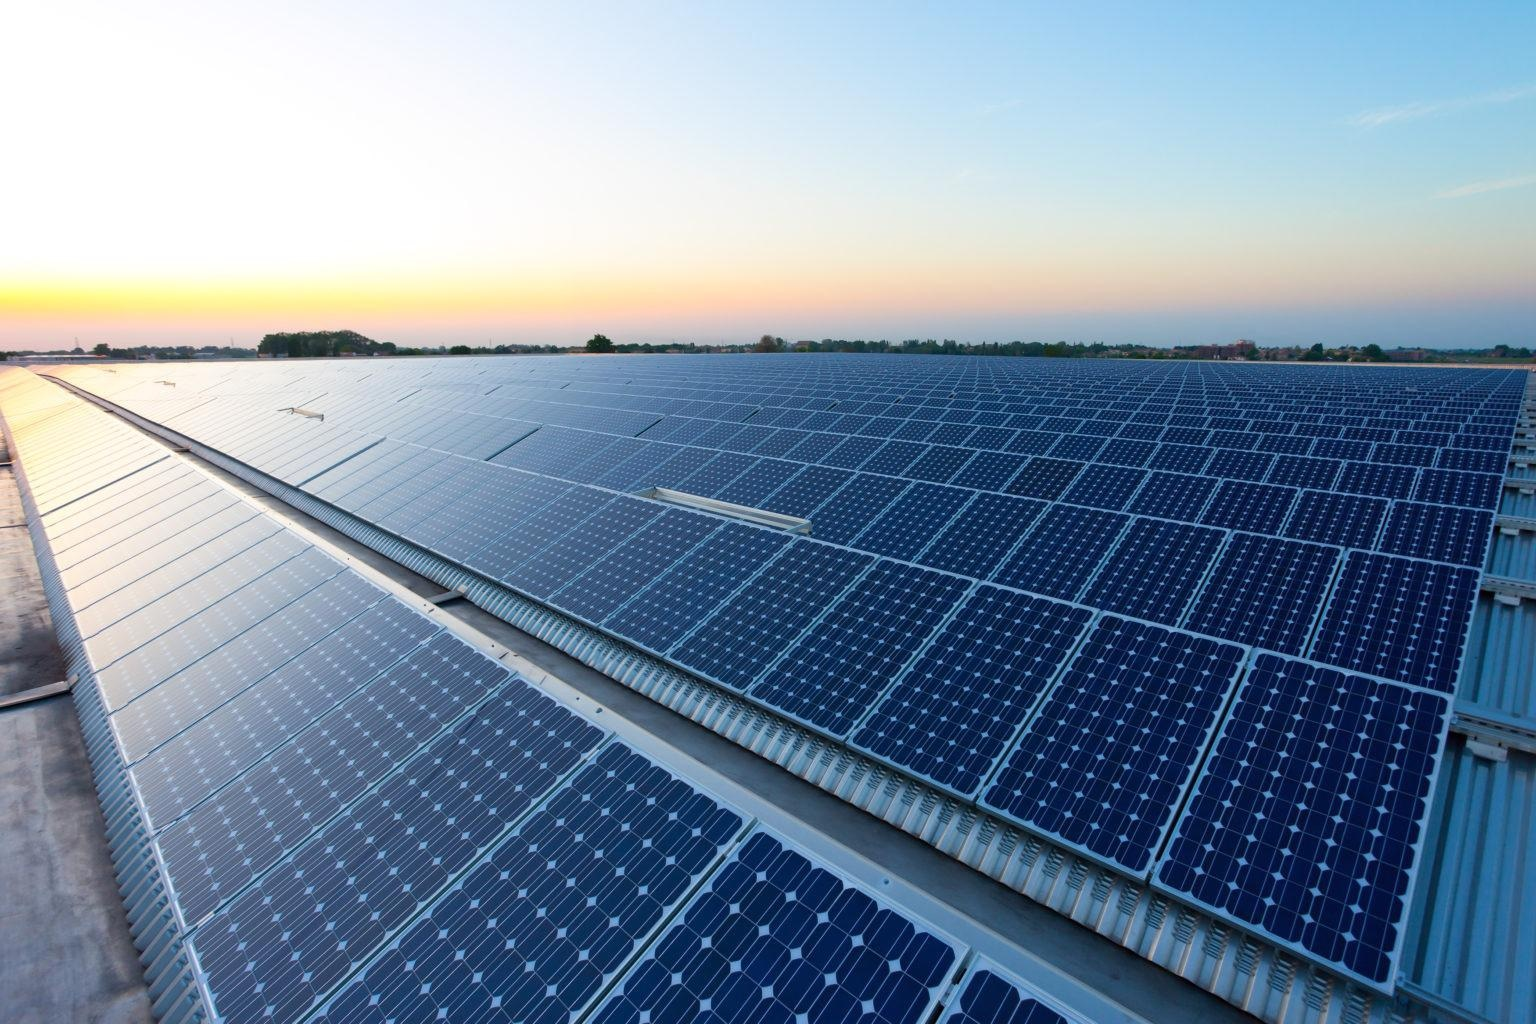 Reflecting on the 2020 Solar Industry